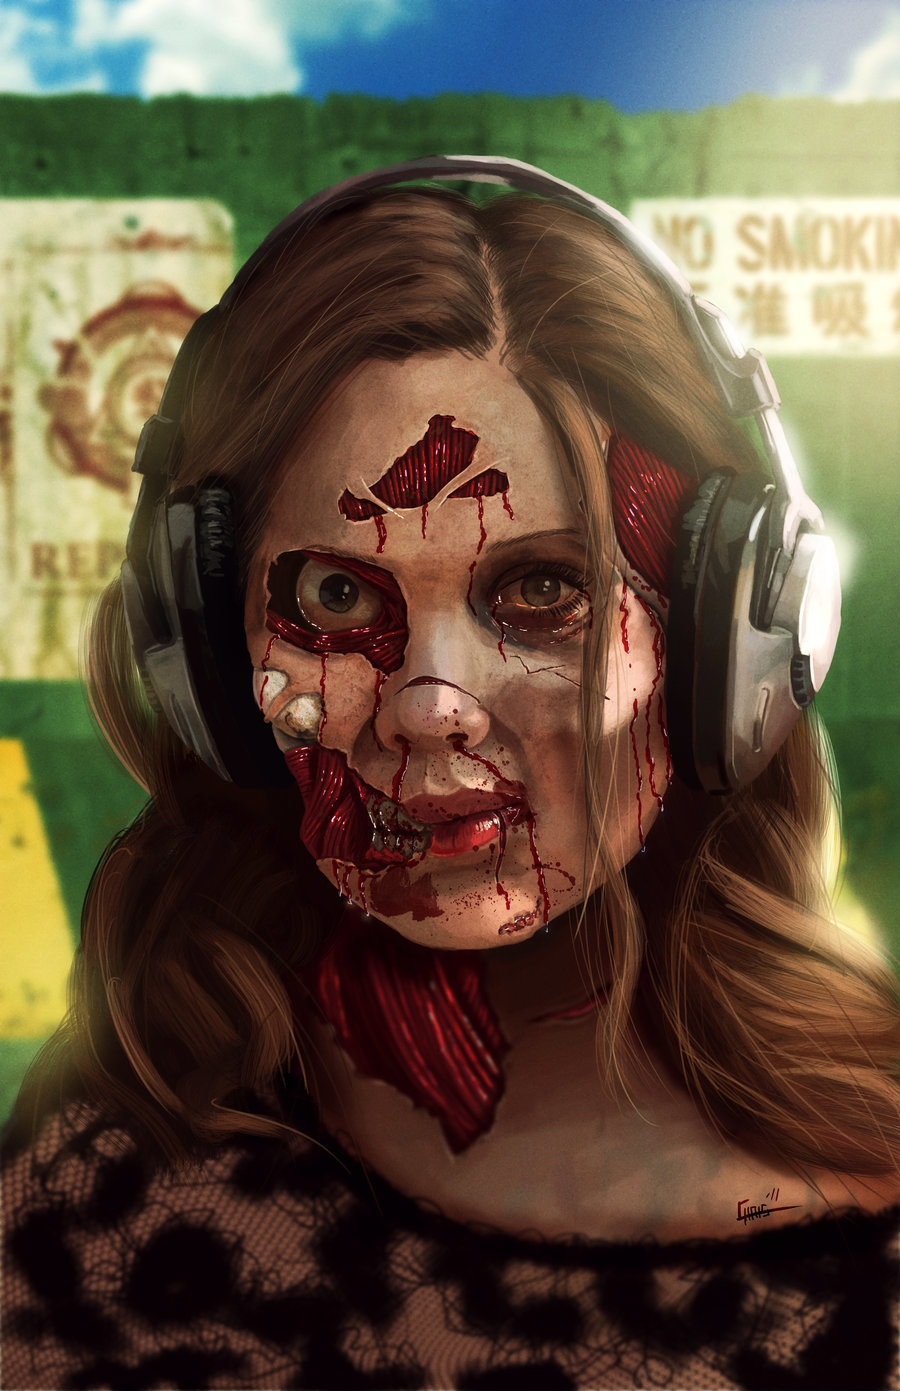 Chris shehan zombie chick by zhourules d4crabv